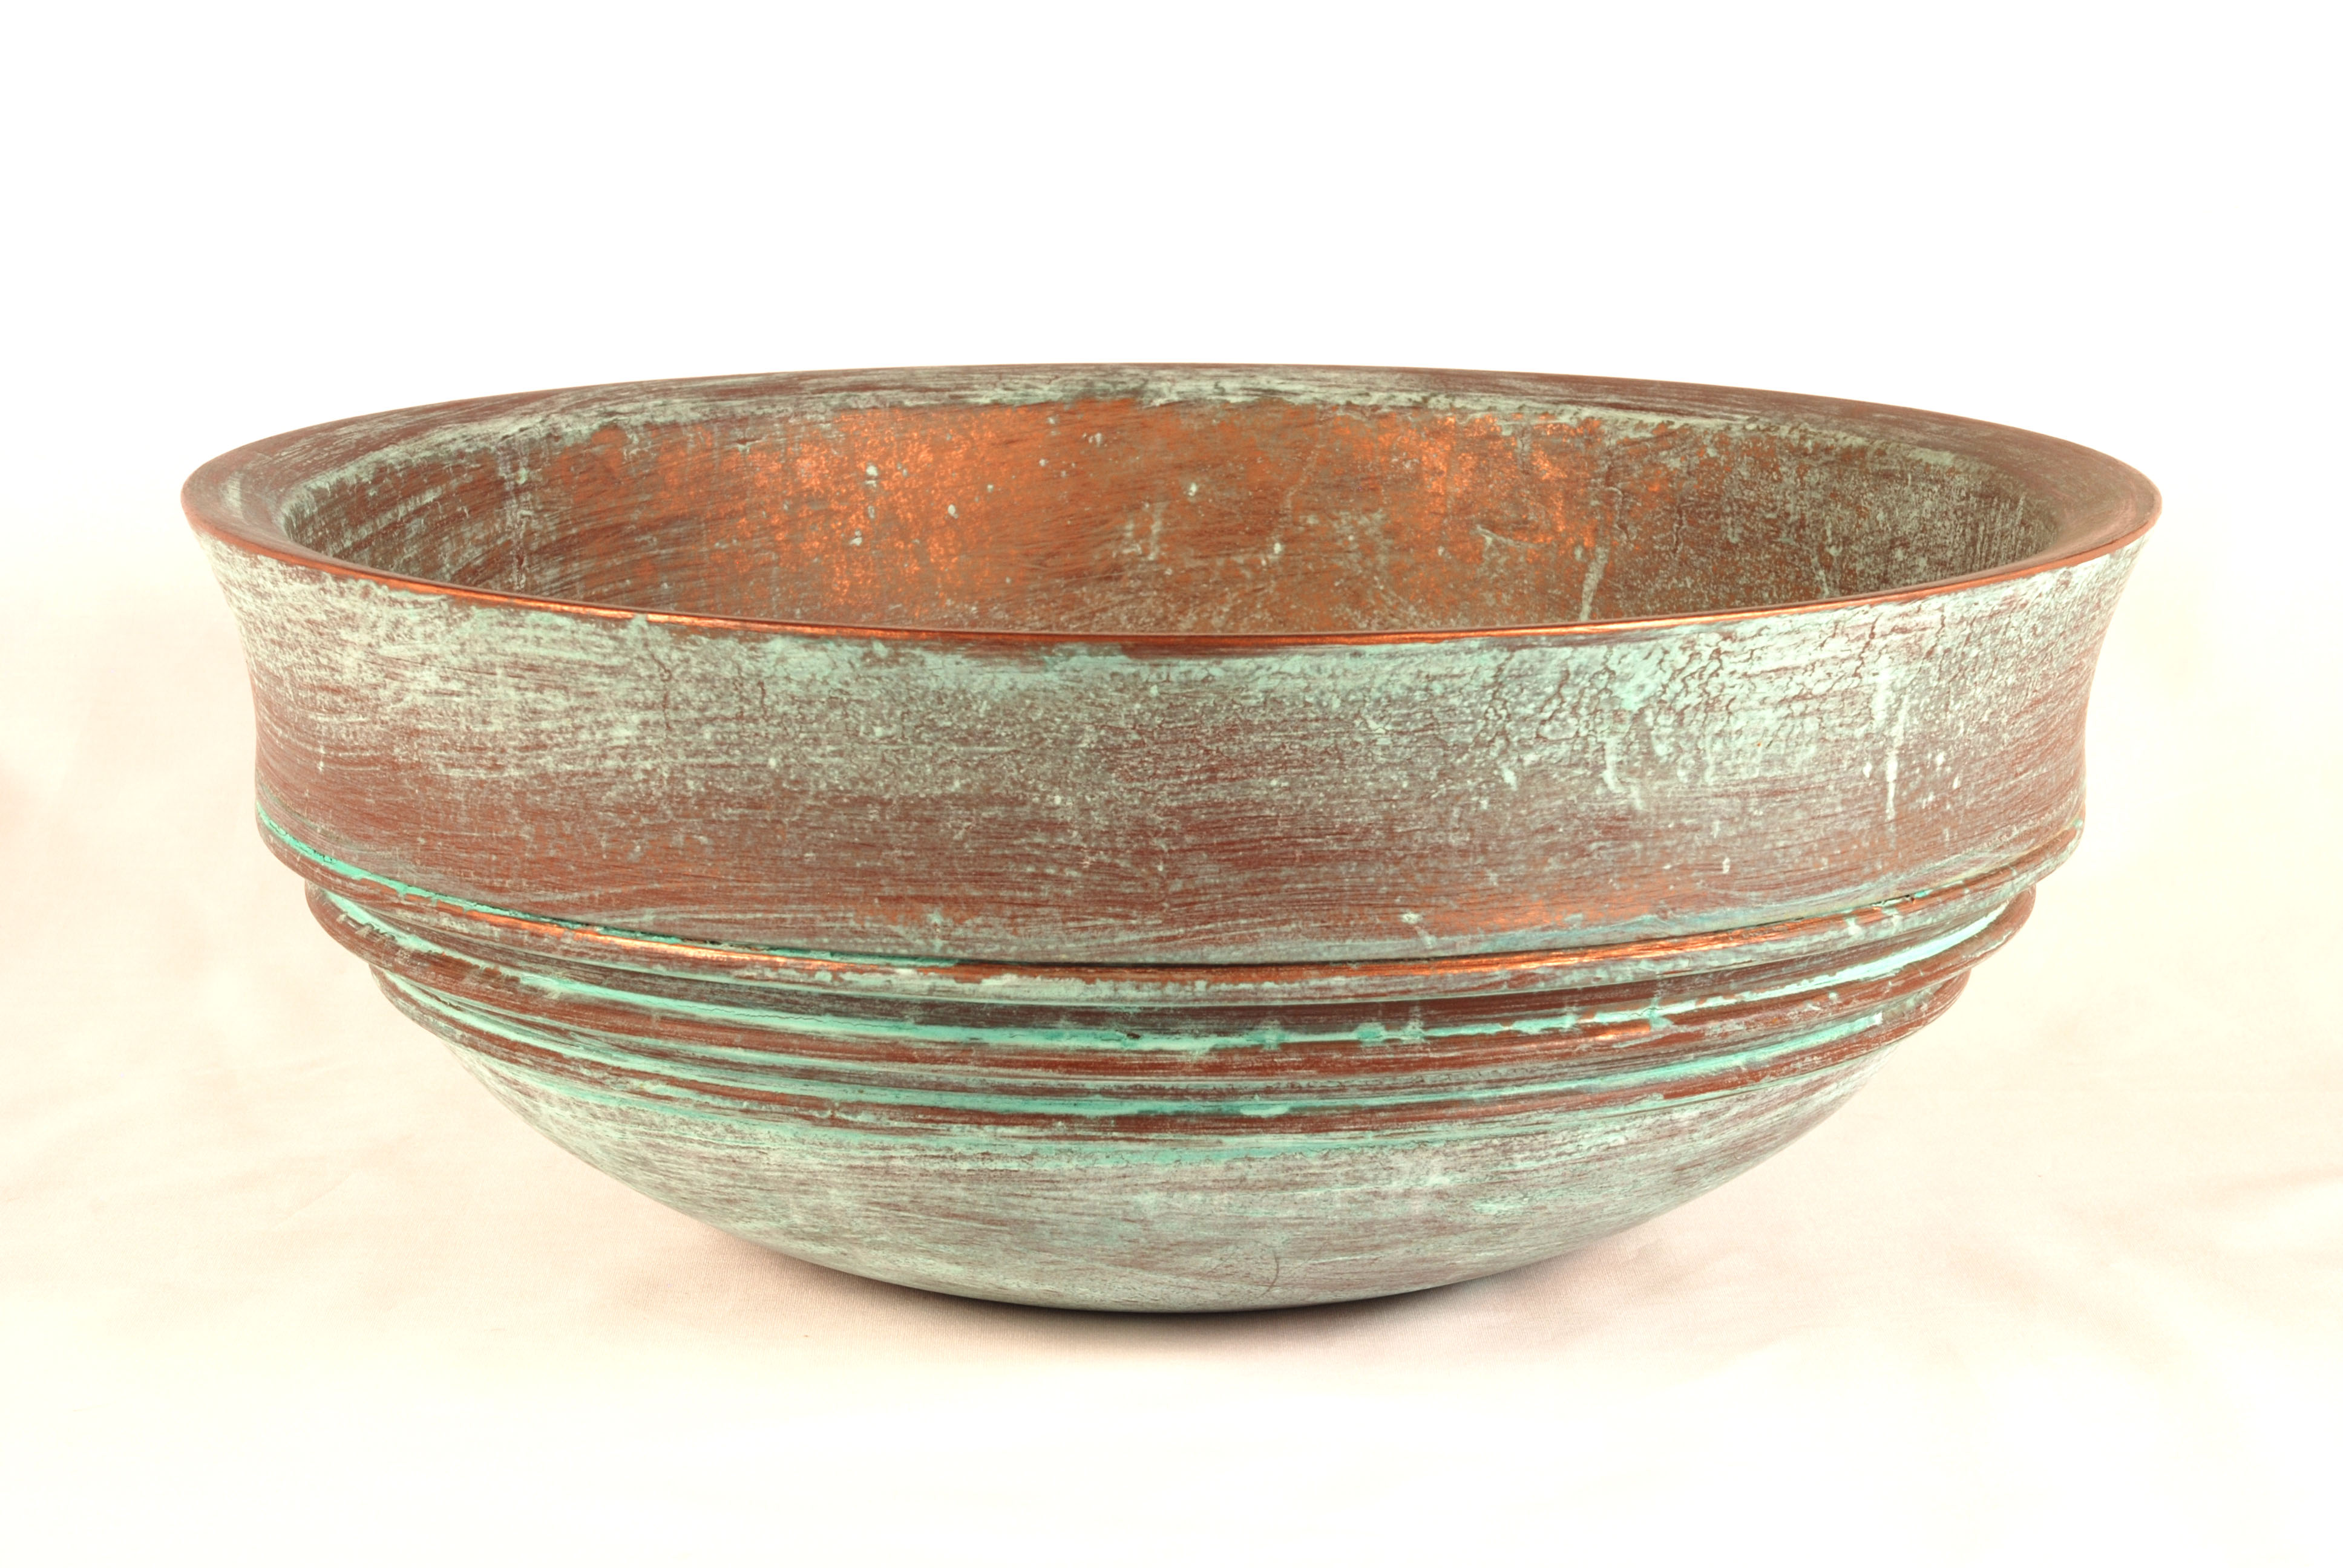 how to clean oxidized copper